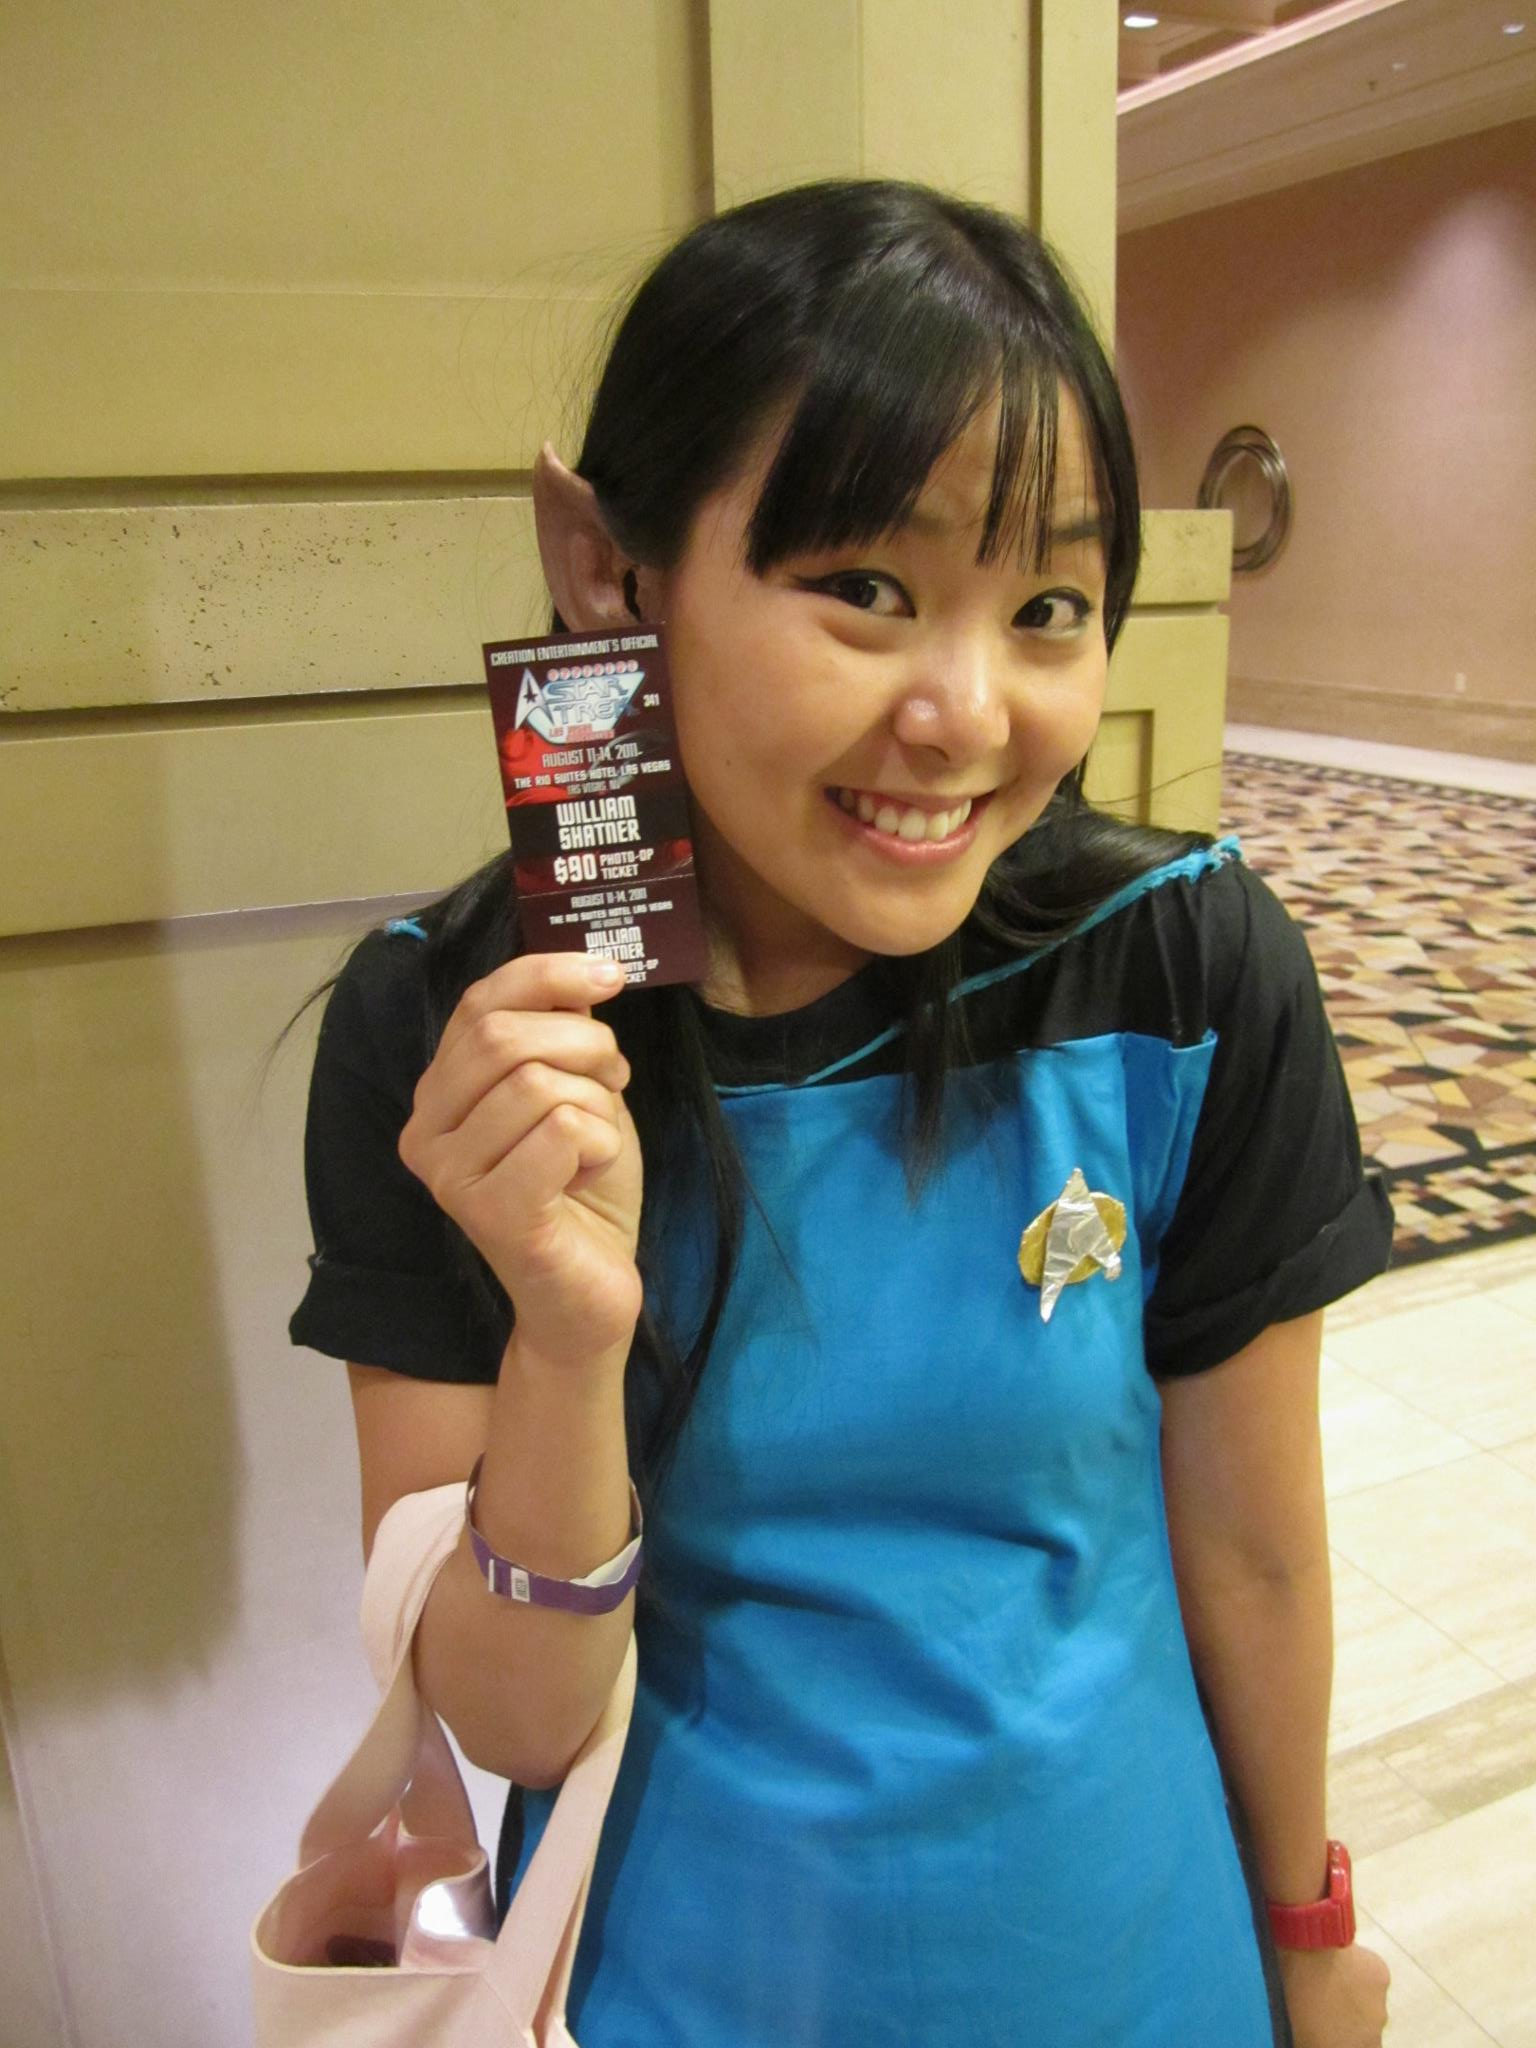 star trek convention las vegas 14 star trek convention las vegas 16